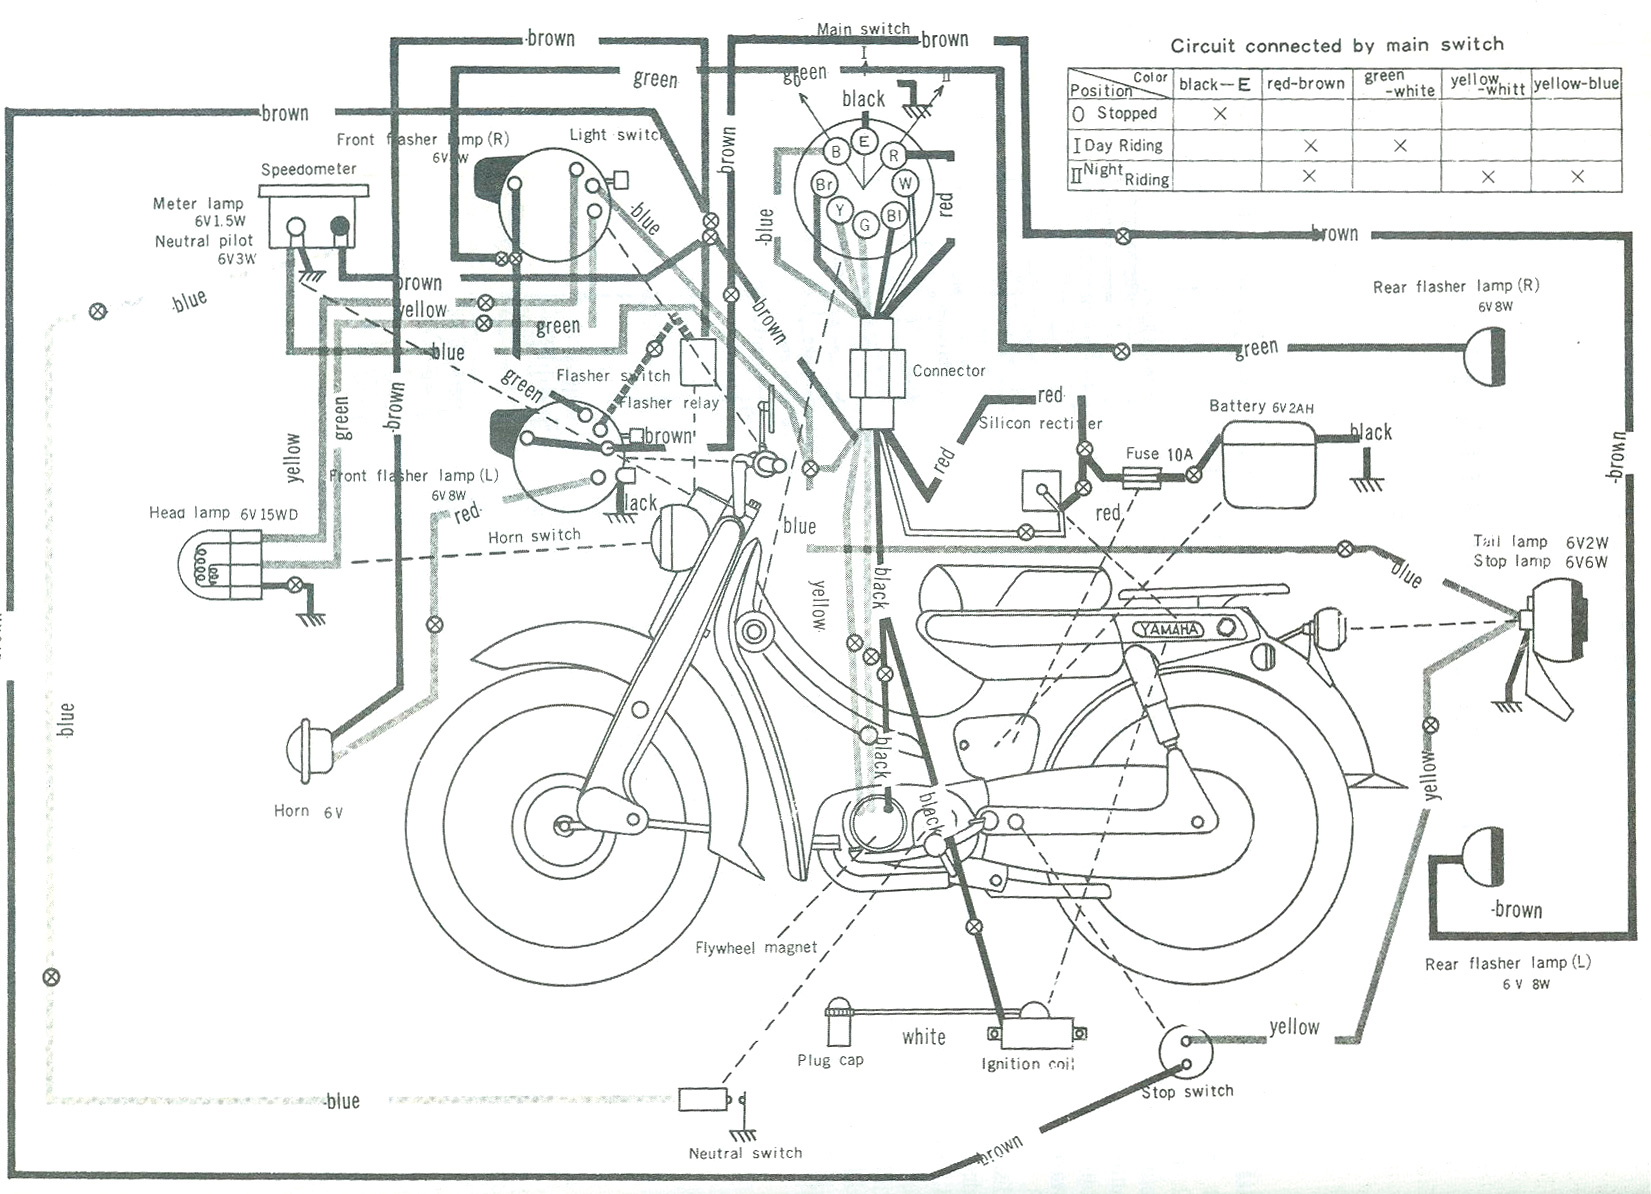 u5e_wiring u5e] motorcycle wiring schematics diagram yamaha ct175 wiring diagram at nearapp.co